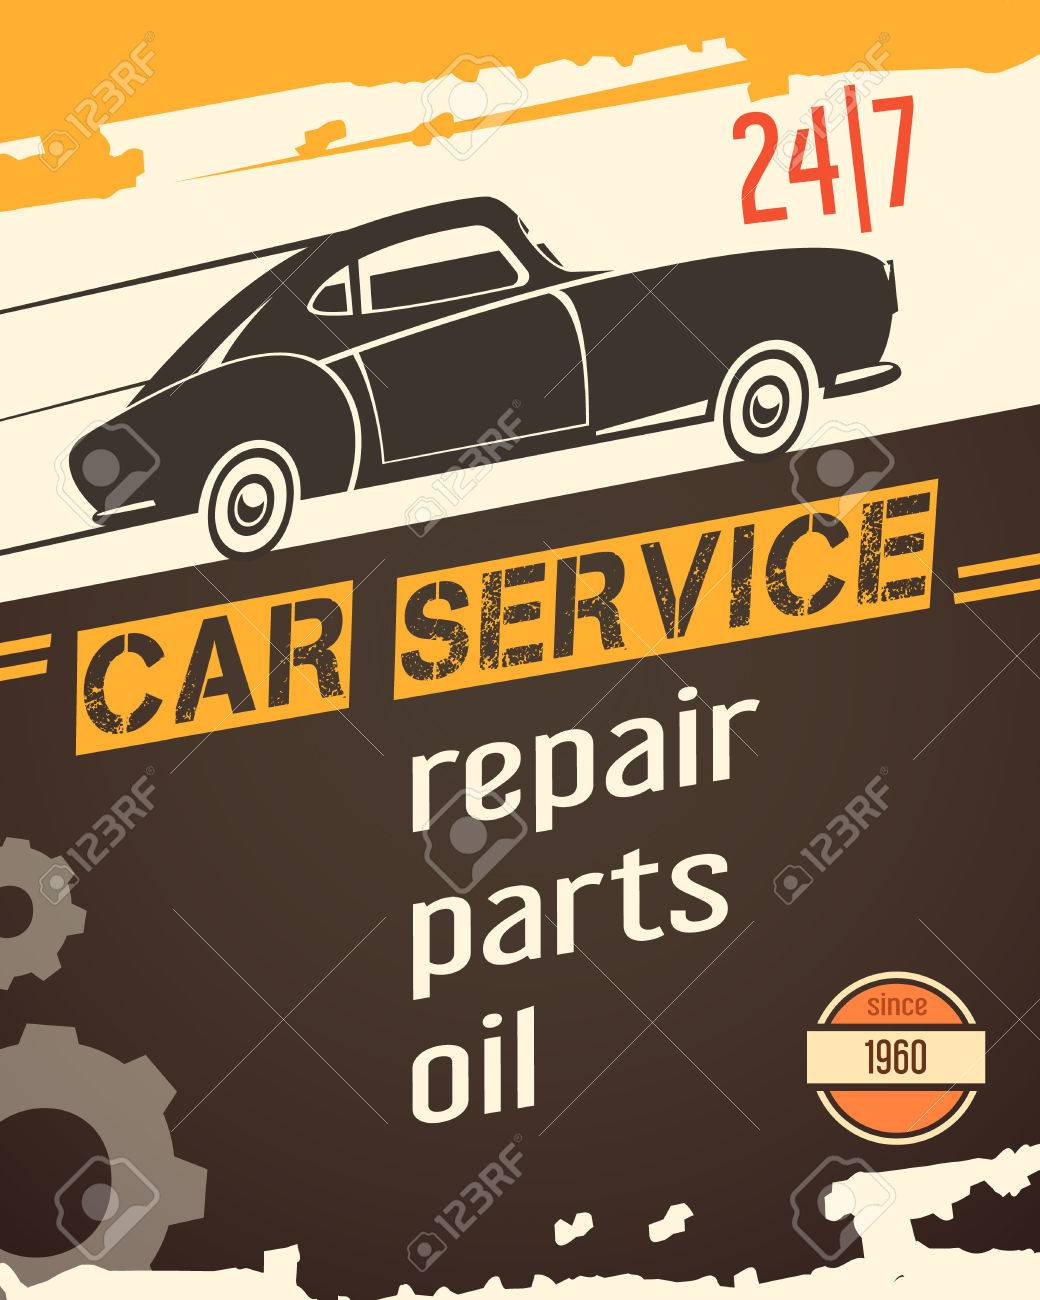 Original Vintage Auto Service Garage Poster For Sale With Retro ...